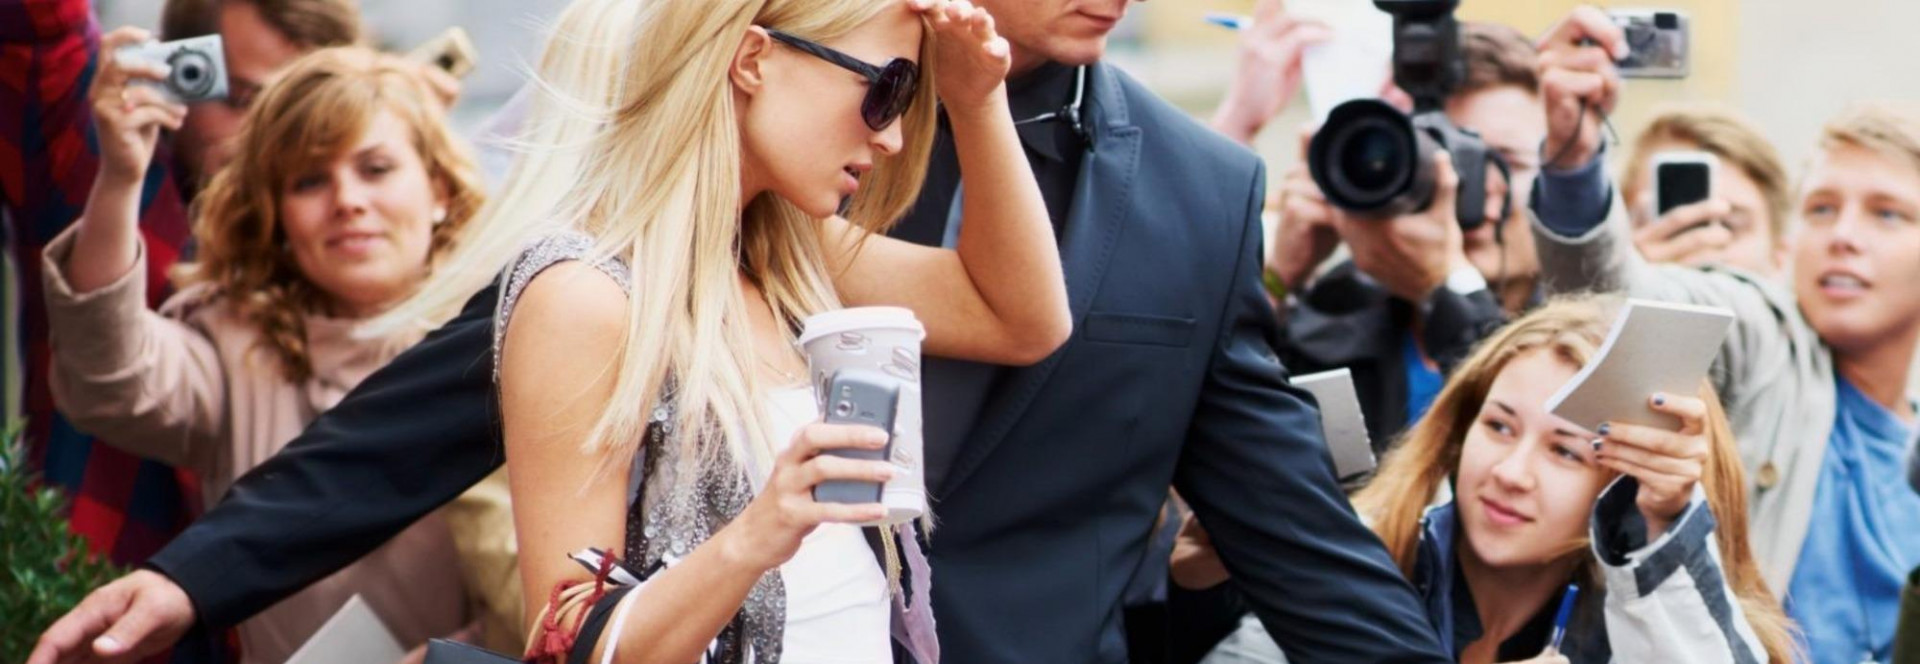 Digital Influencers vs. Celebrities: Which is Best for Your Business?